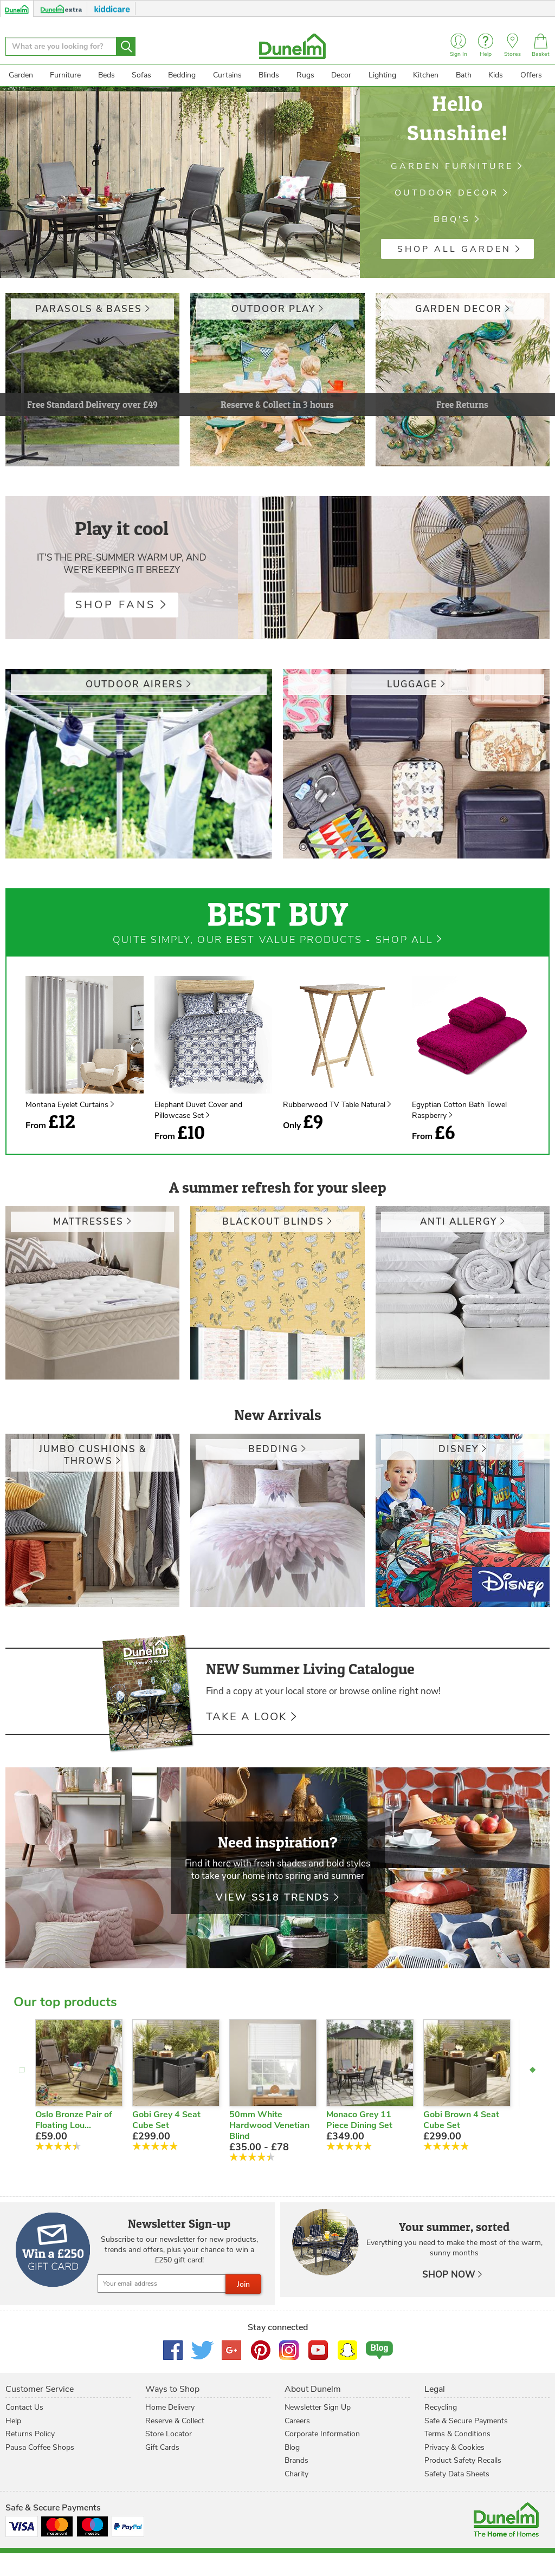 Dunelm Group Competitors, Revenue and Employees - Owler Company Profile